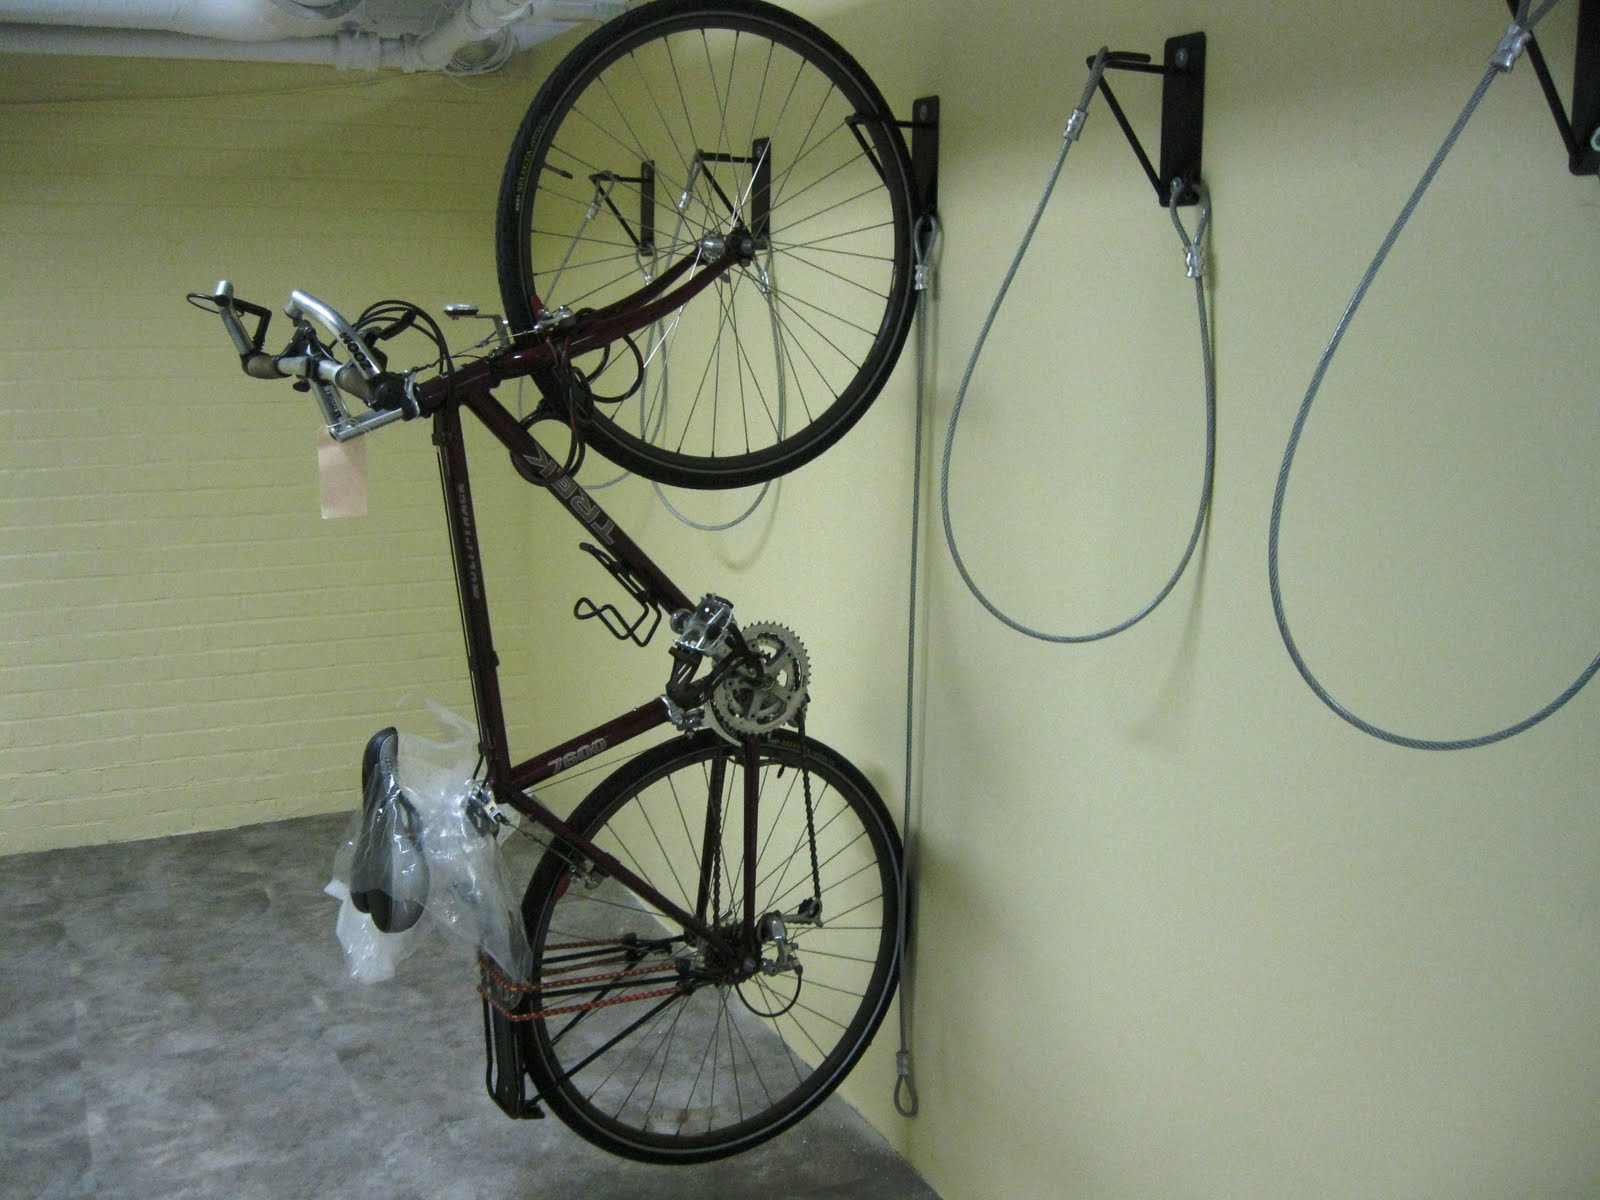 nyc bike storage how to design bike storage rooms in nyc gales wall mount bike racks headed to. Black Bedroom Furniture Sets. Home Design Ideas